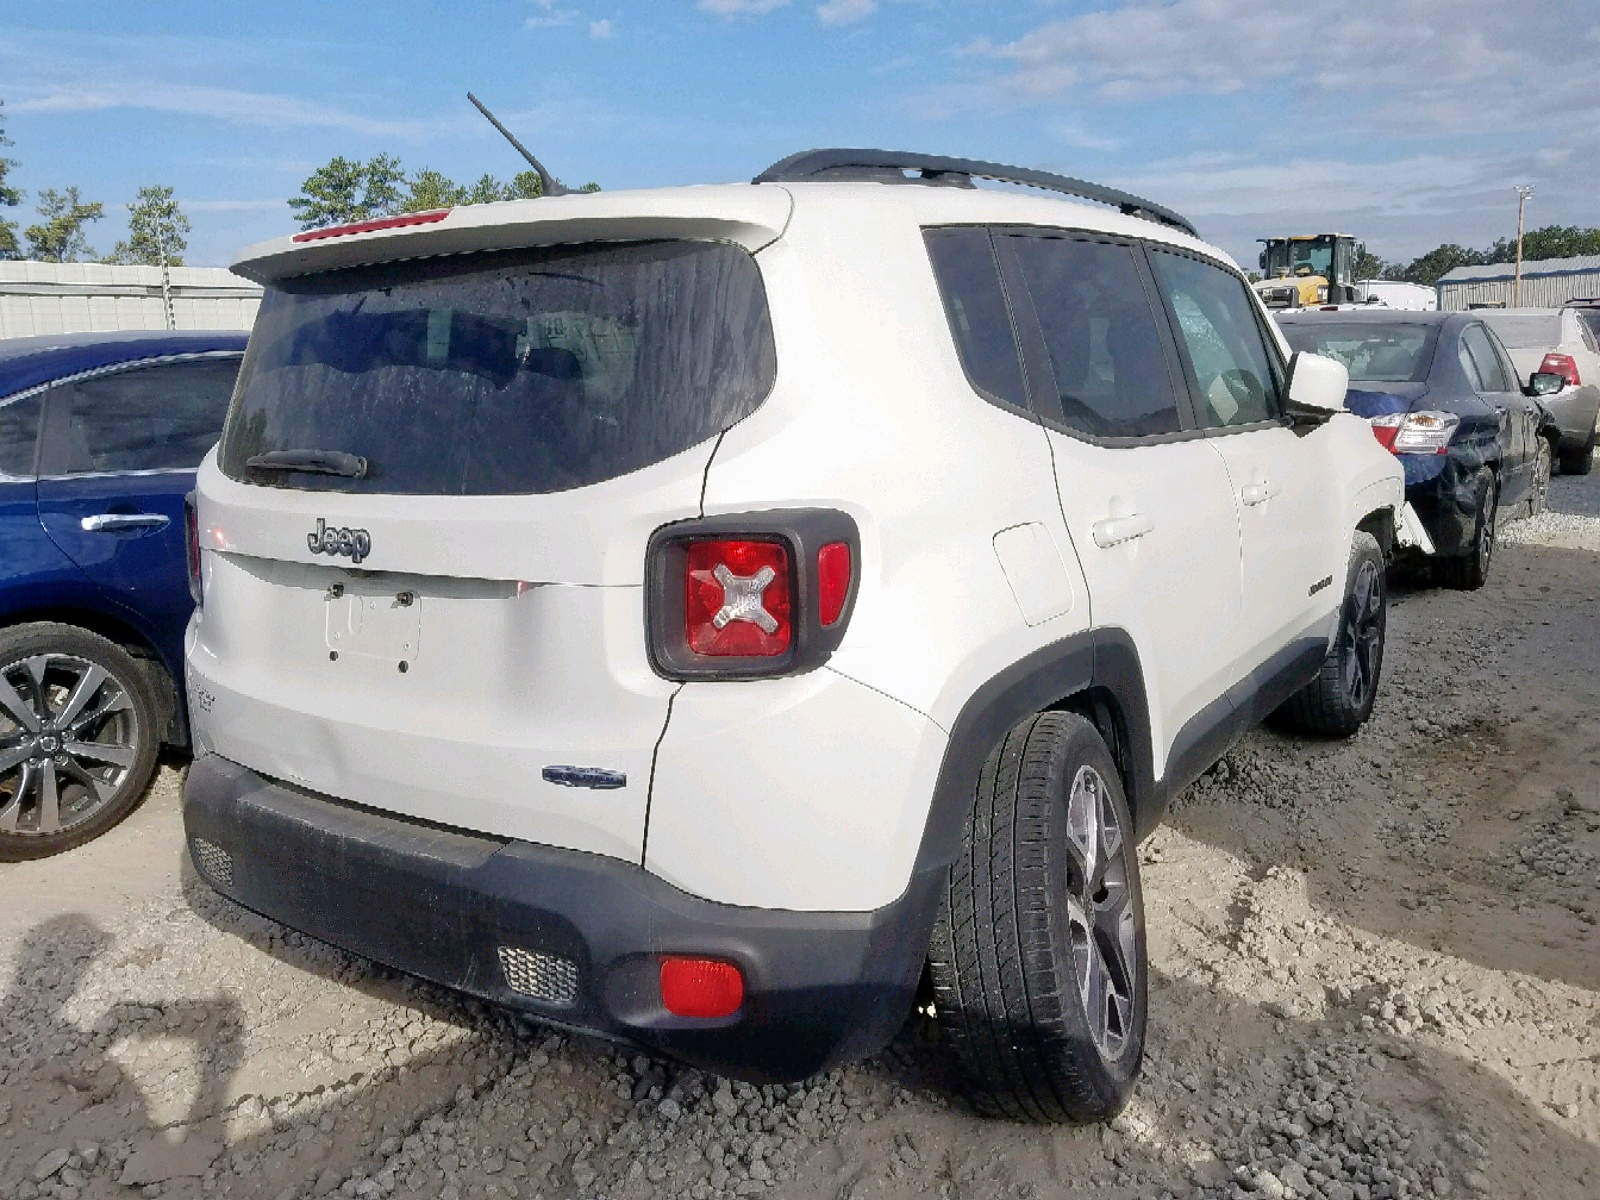 ZACCJABT0FPB69150 - 2015 Jeep Renegade L 2.4L rear view